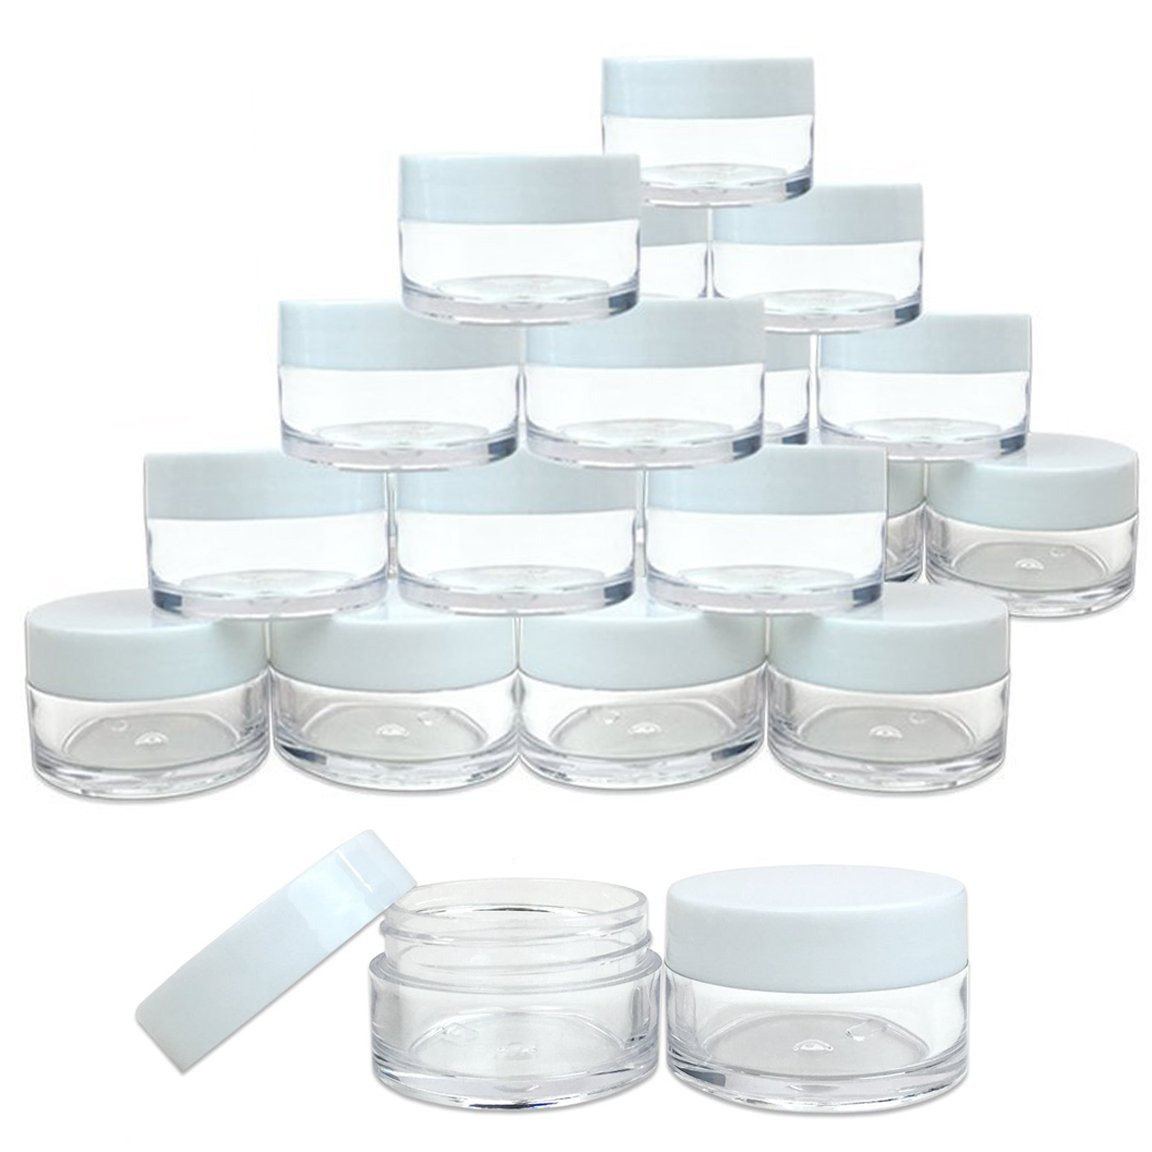 Beauticom 24 Pieces 20G 20ML Round Clear Jars with WHITE Lids for Lotion, Creams, Toners, Lip Balms, Makeup Samples – BPA Free